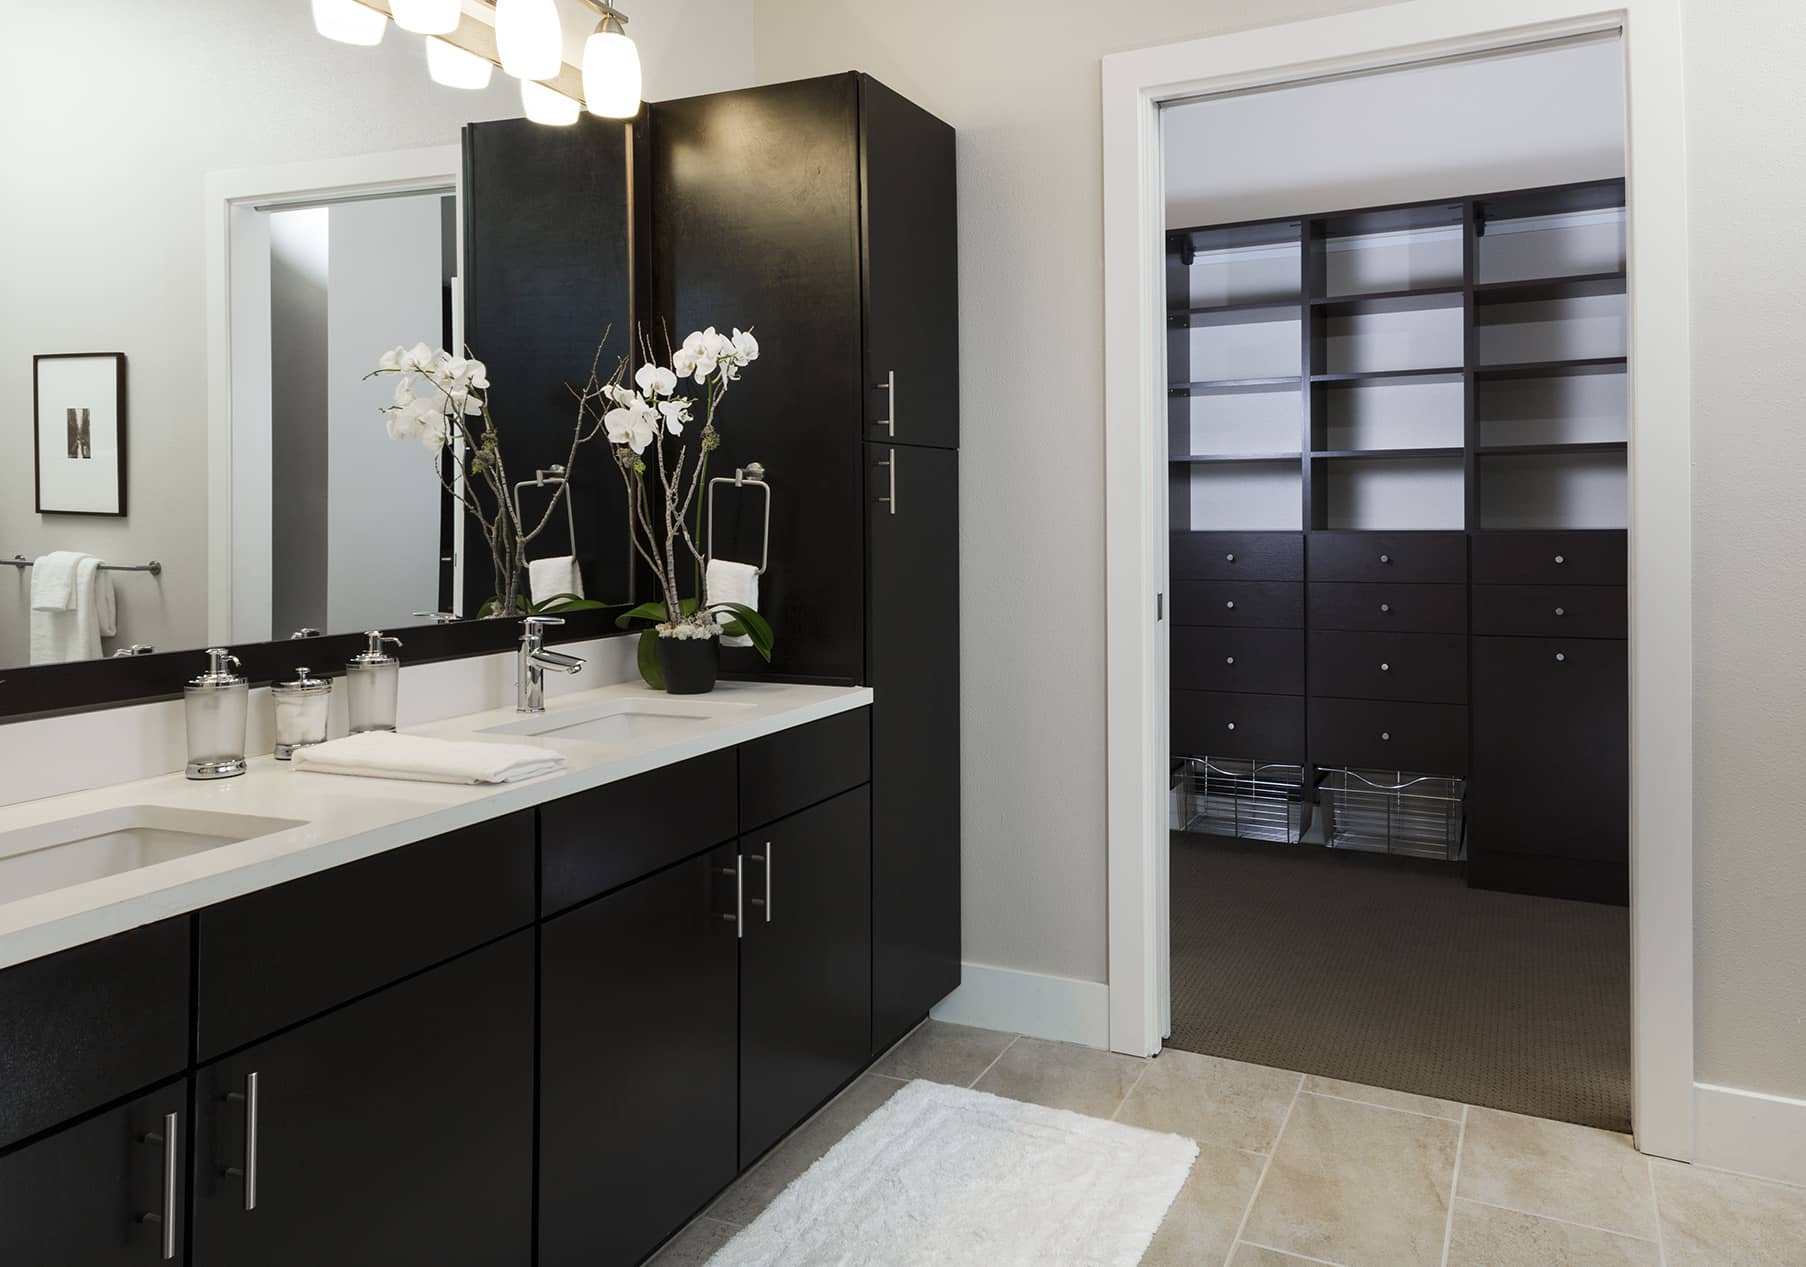 Bathroom at Channel Mission Bay Serviced Apartments